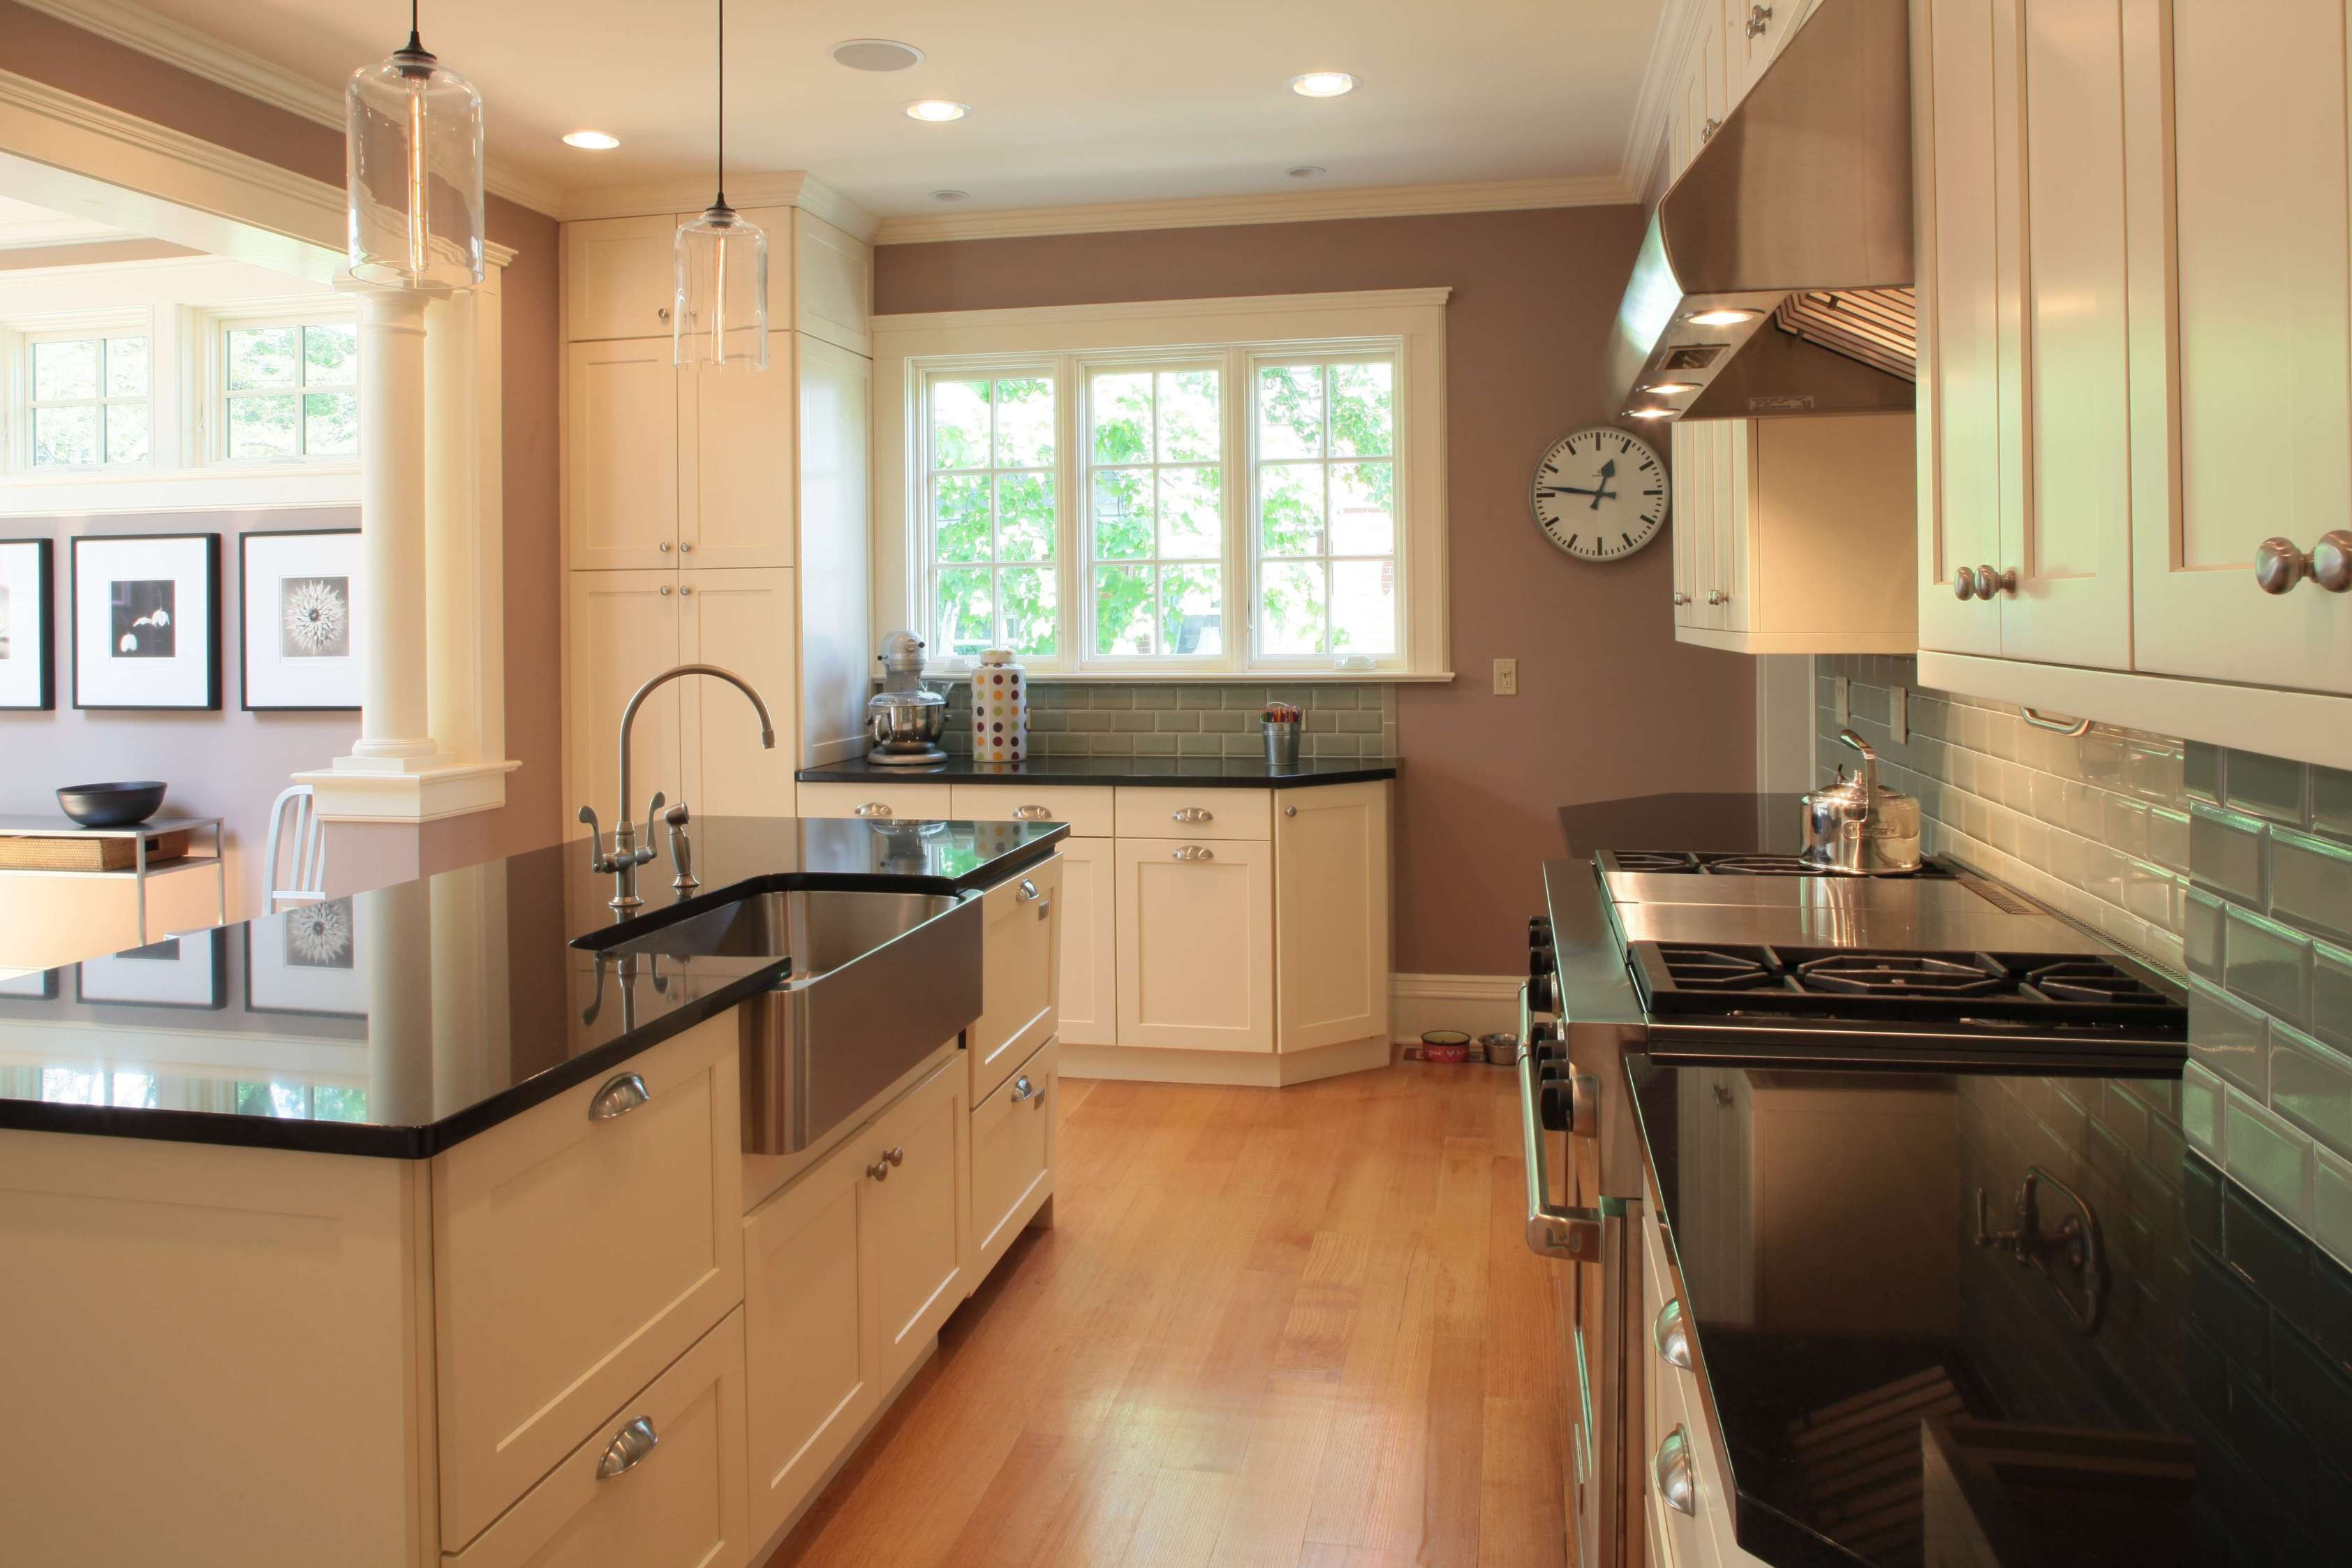 light hardwood floors with dark cabinets of astonishing light wood kitchen island on kitchen island beautiful h for astonishing light wood kitchen island on kitchen island beautiful h sink kitchen island a sinki 0d exciting